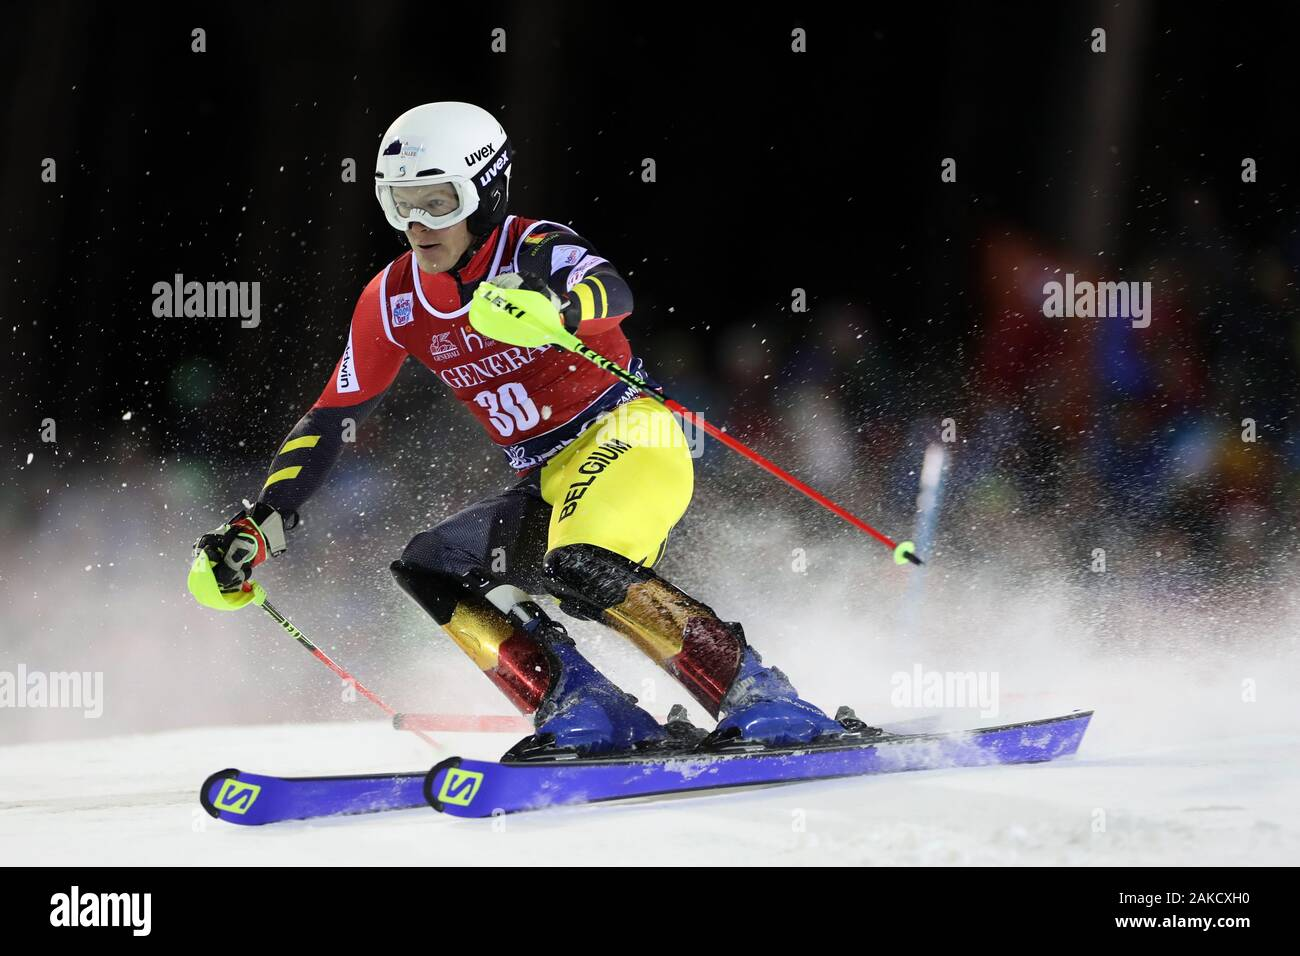 Madonna di Campiglio, Italy. 8th Jan 2020. FIS Alpine Ski World Cup Men's Night Slalom in Madonna di Campiglio, Italy on January 8, 2020, Armand Marchant (BEL) - Editorial Use Credit: Action Plus Sports Images/Alamy Live News Stock Photo